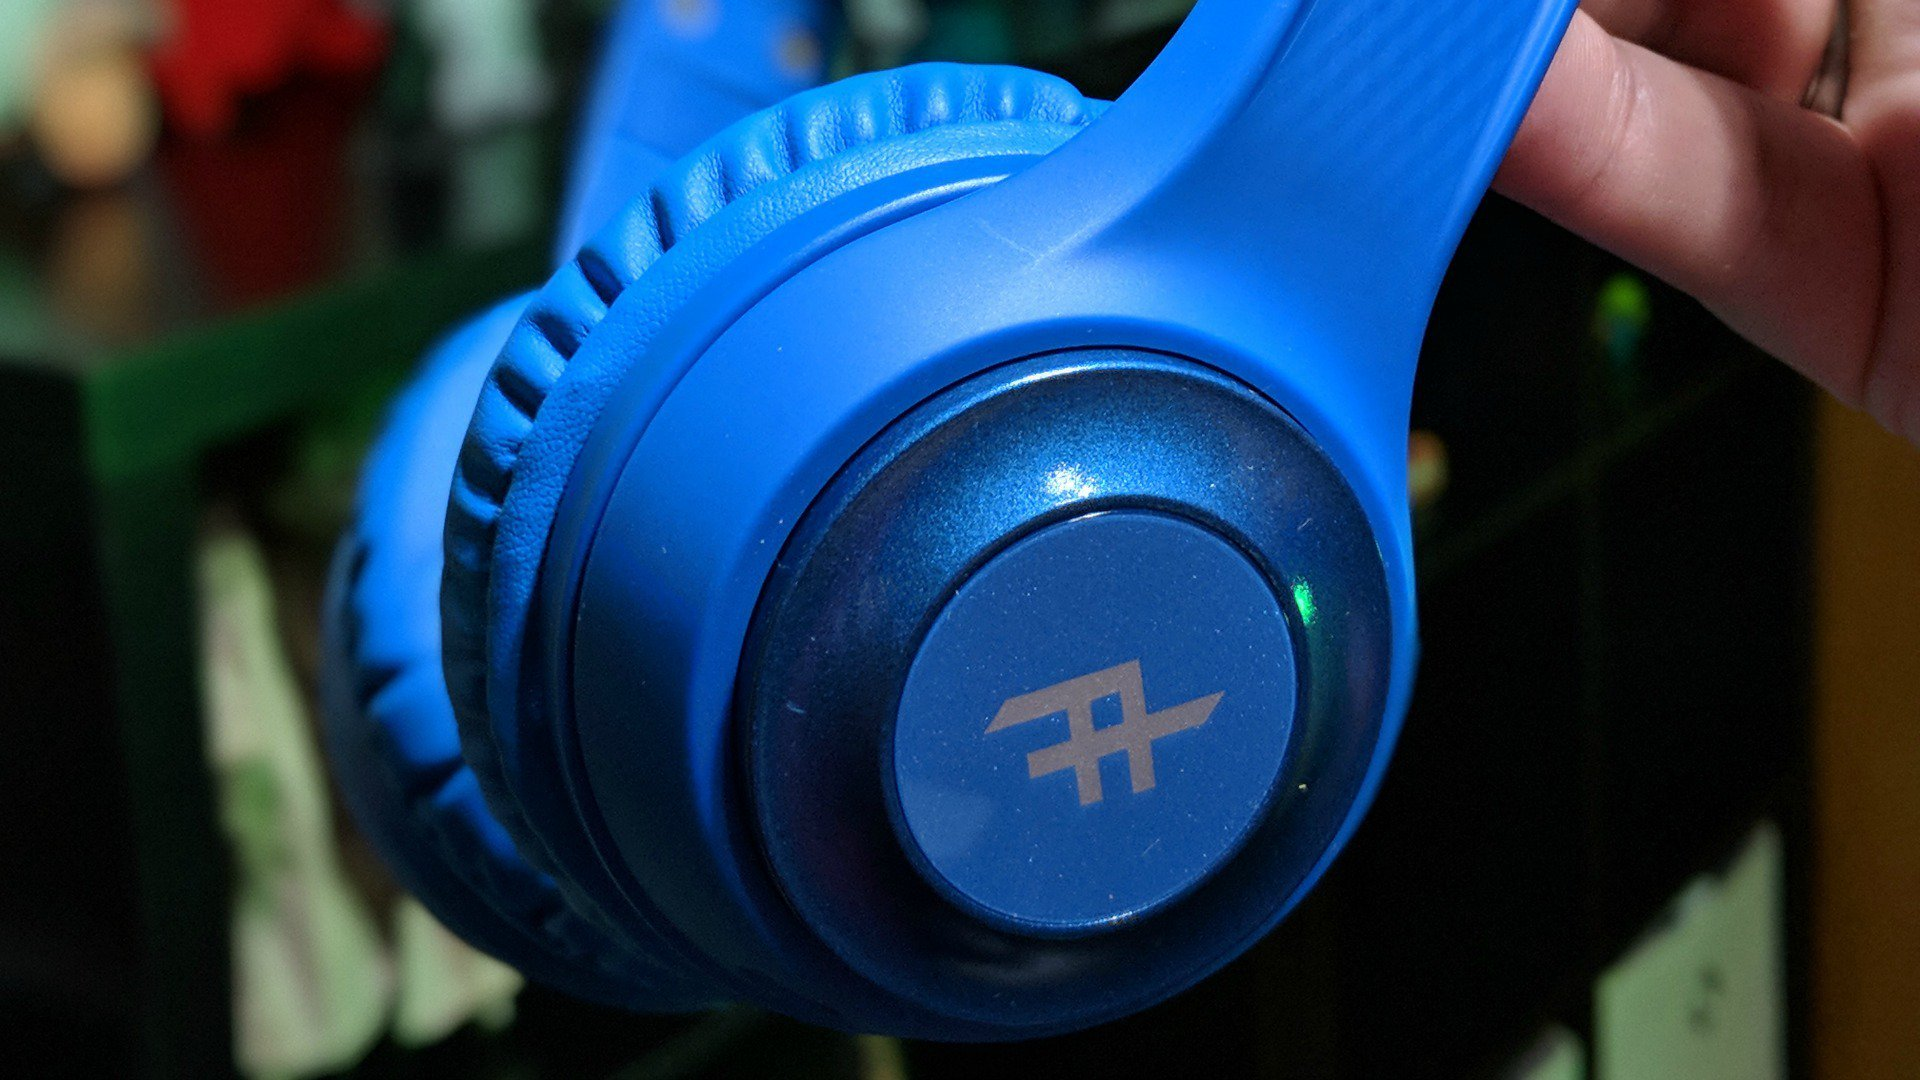 f59073a0c31 Toxix Wireless Headphones ($24.99 SRP) – If you're not ready to commit to  the Resound model, save ten bucks and opt for these.